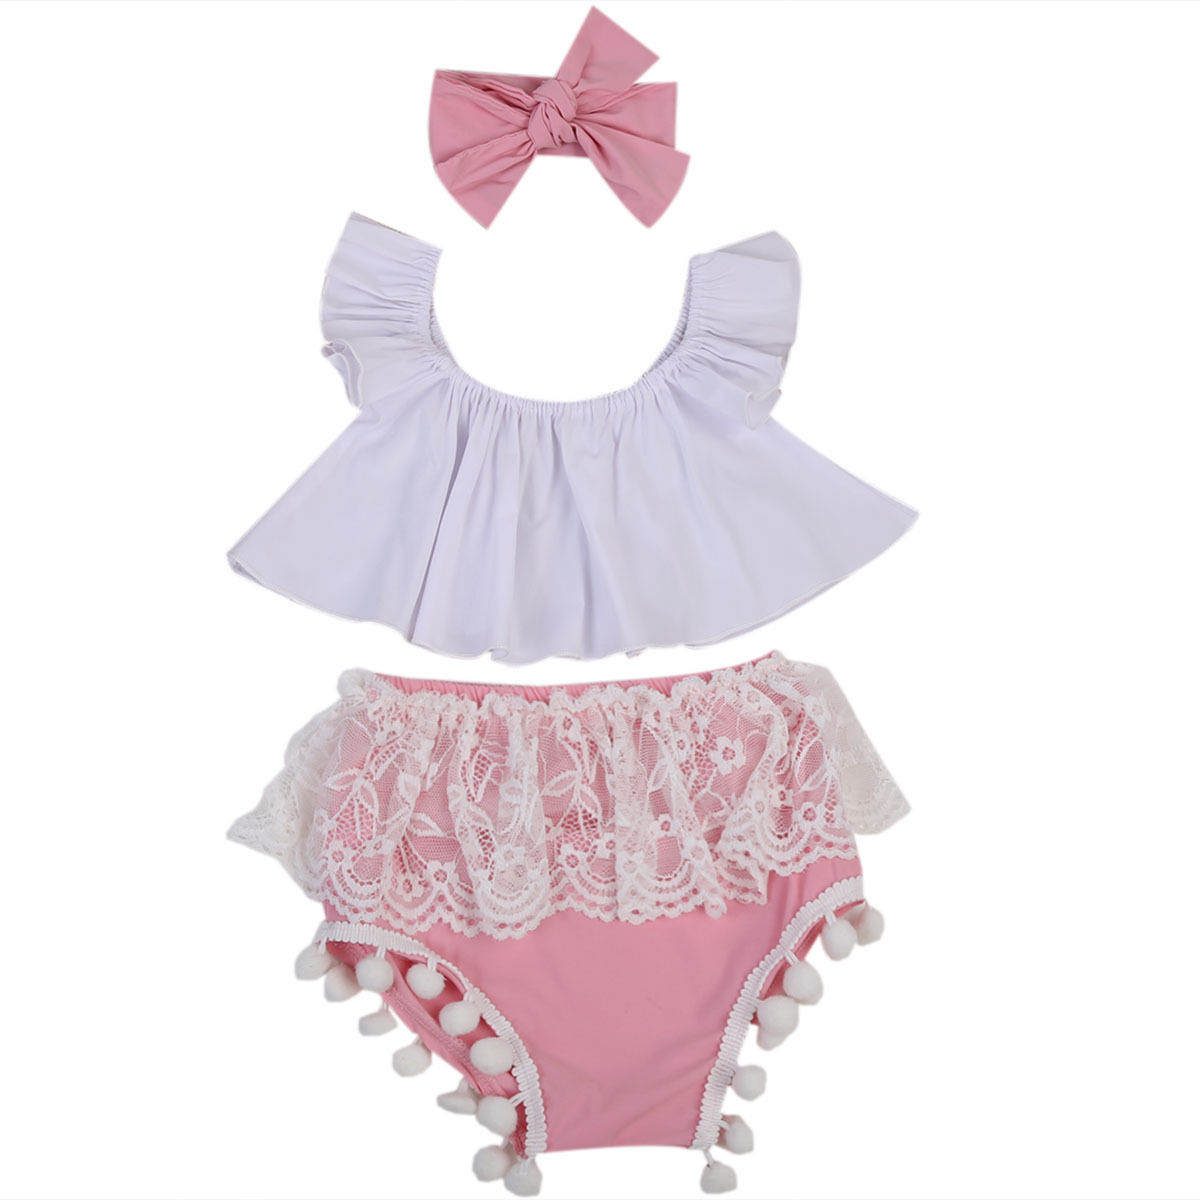 Summer Newborn Baby Girls Clothing Set Outfits Clothes Ruffle Tops+Pink Lace Shorts Headband 3PCS Cute Baby Girls Clothes Set newborn baby boy girl clothes set short sleeve top bodysuits leg warmer bow headband 3pcs clothing outfits set